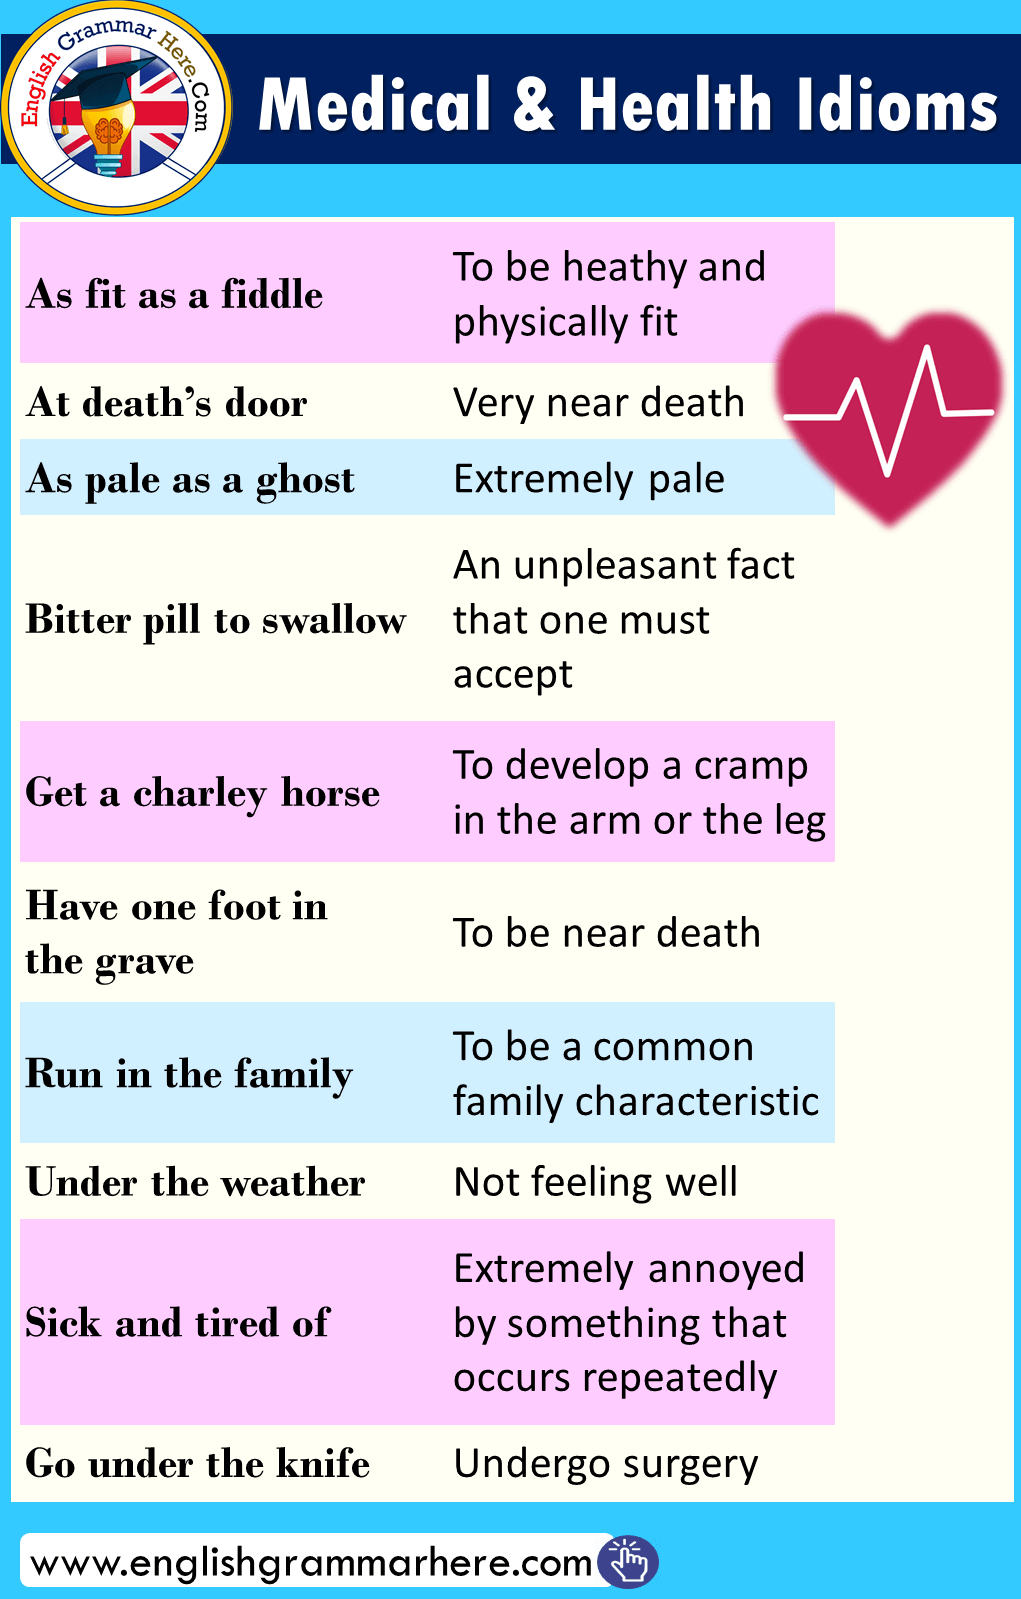 Medical and Health Idioms in English